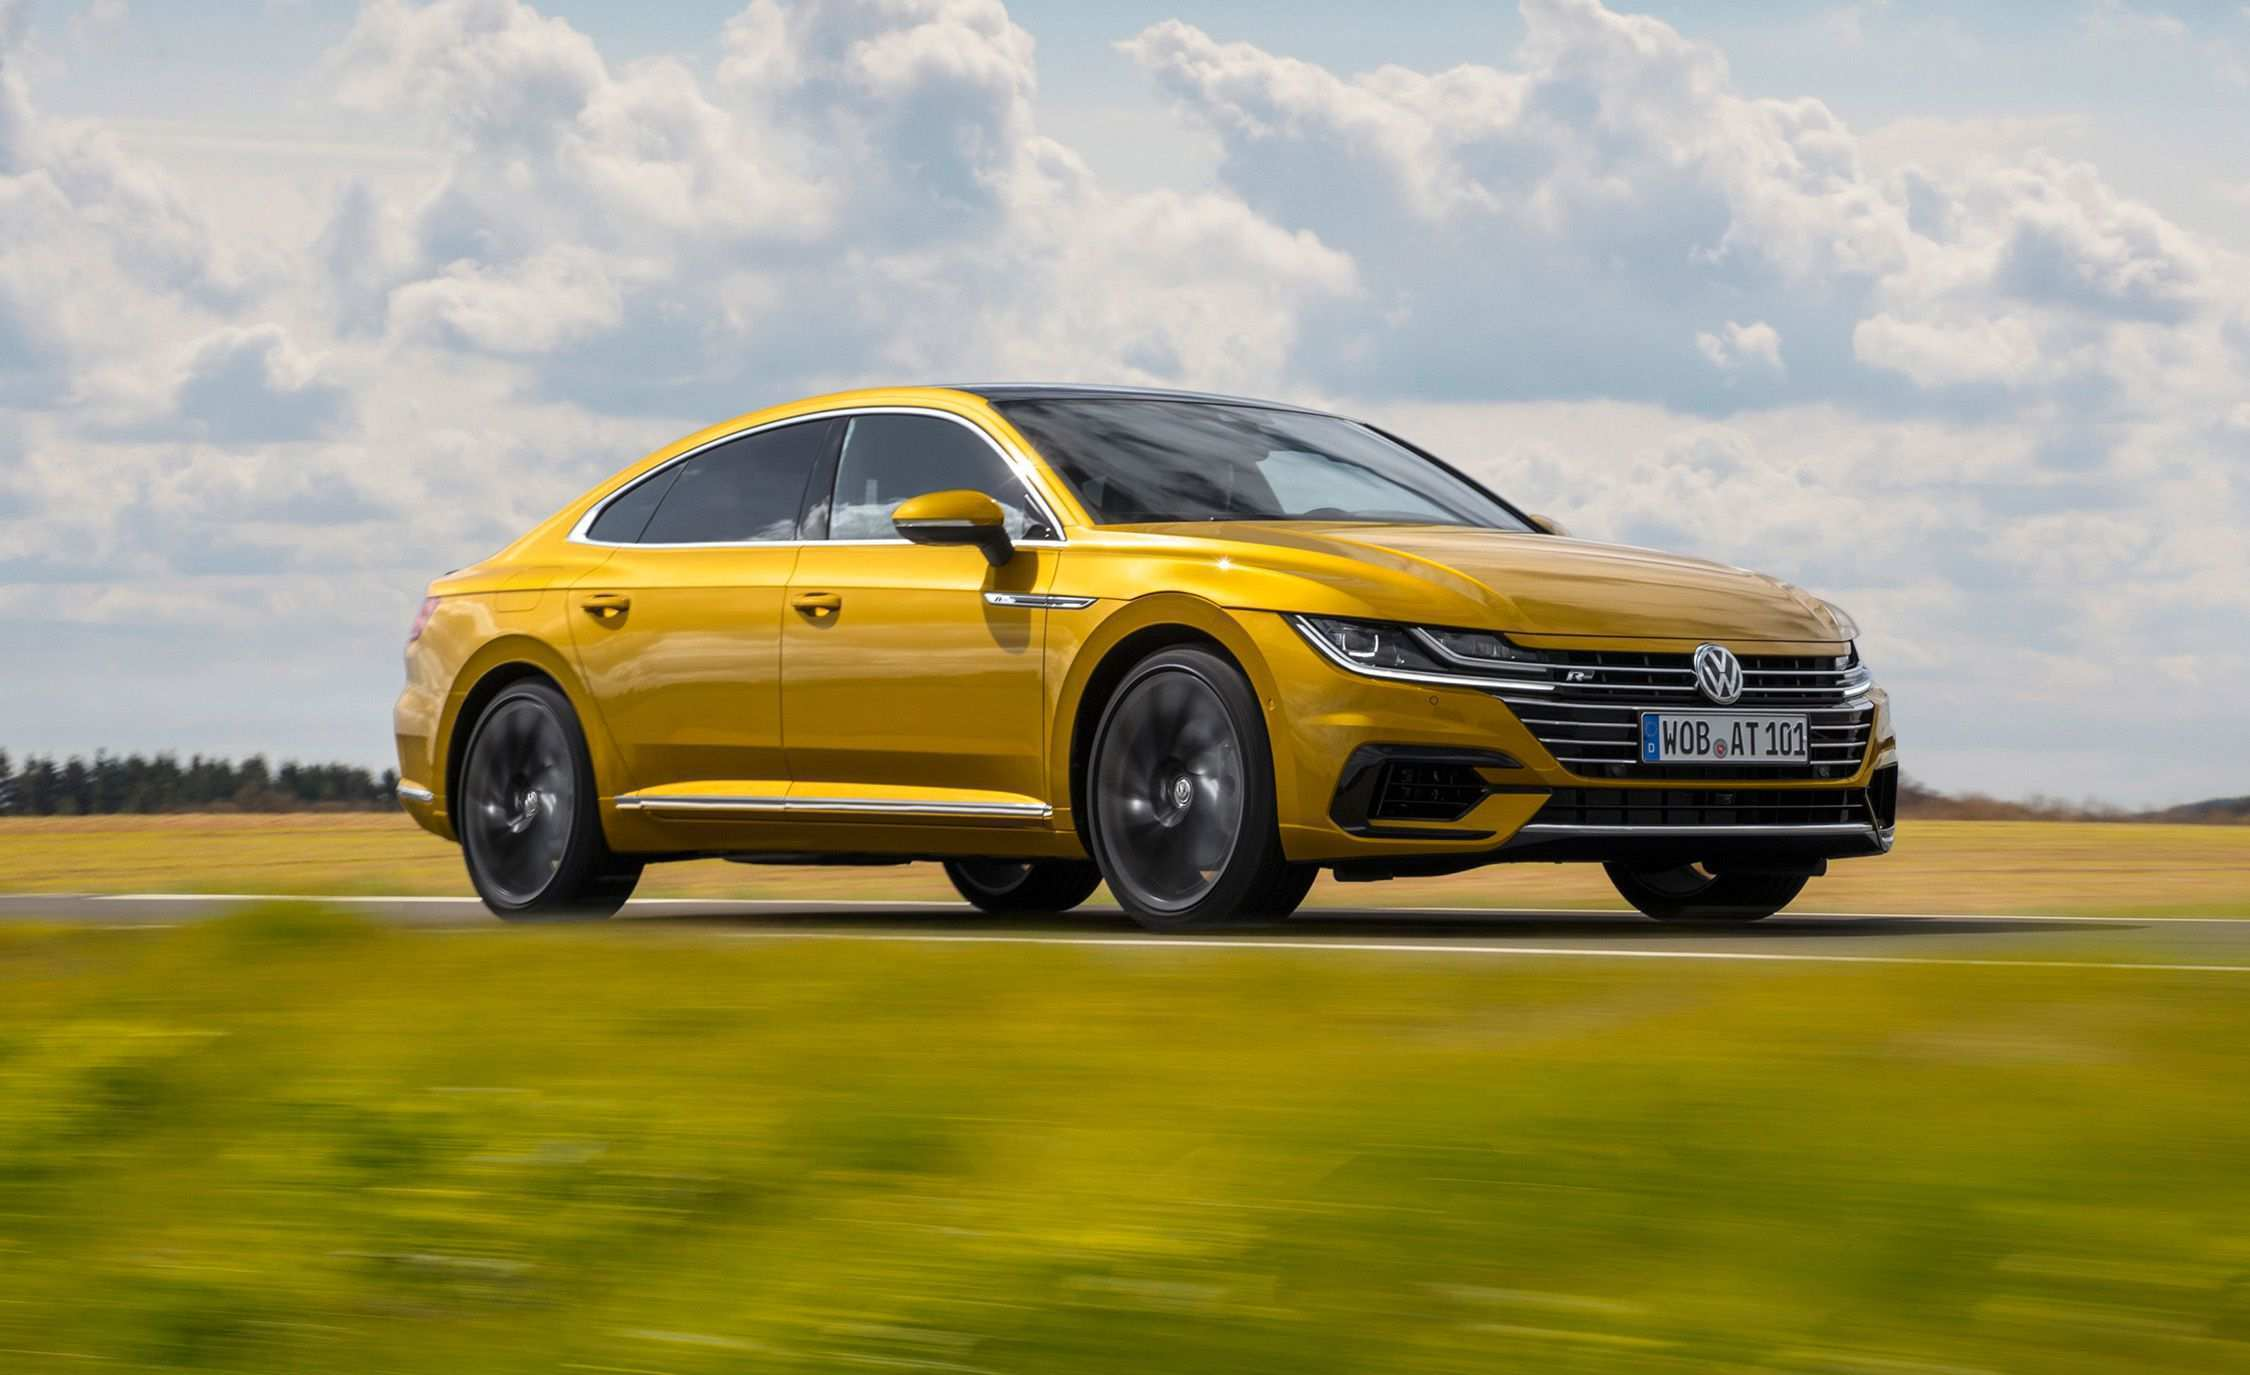 92 Great 2019 Volkswagen Sedan Photos with 2019 Volkswagen Sedan